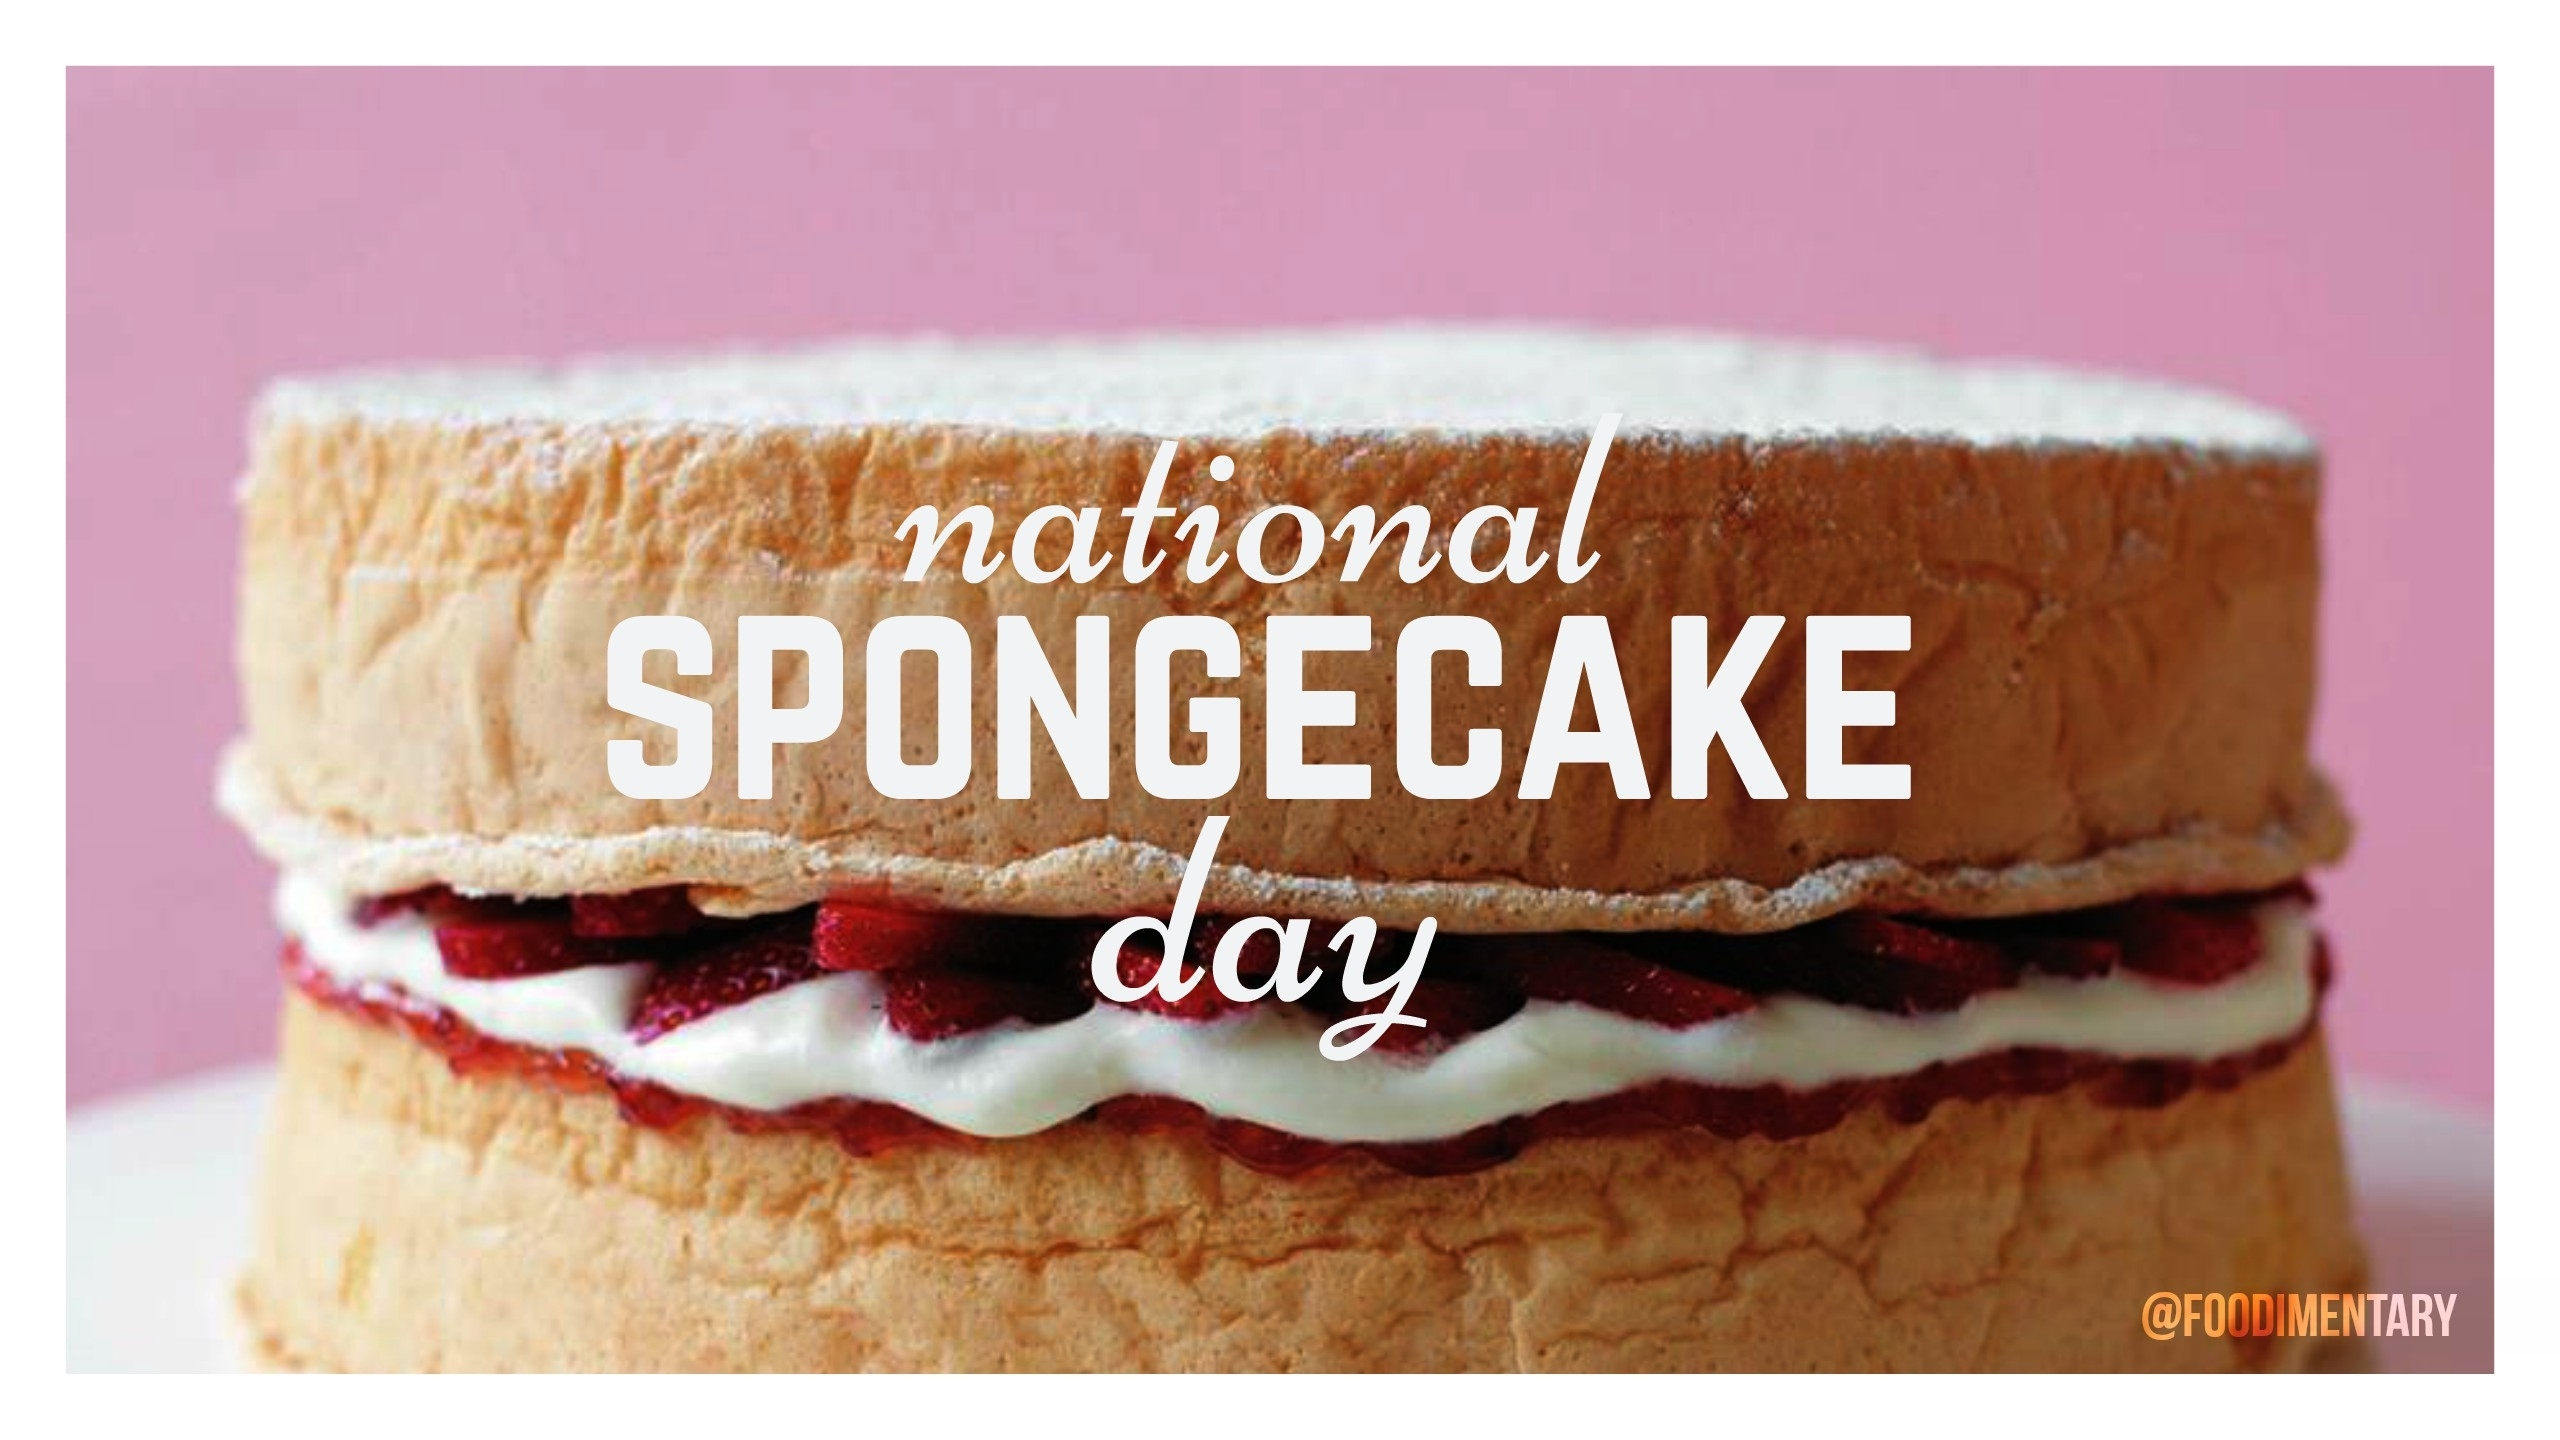 August 23Rd Is National Spongecake Day! | Foodimentary - National with regard to Images National Day August 23